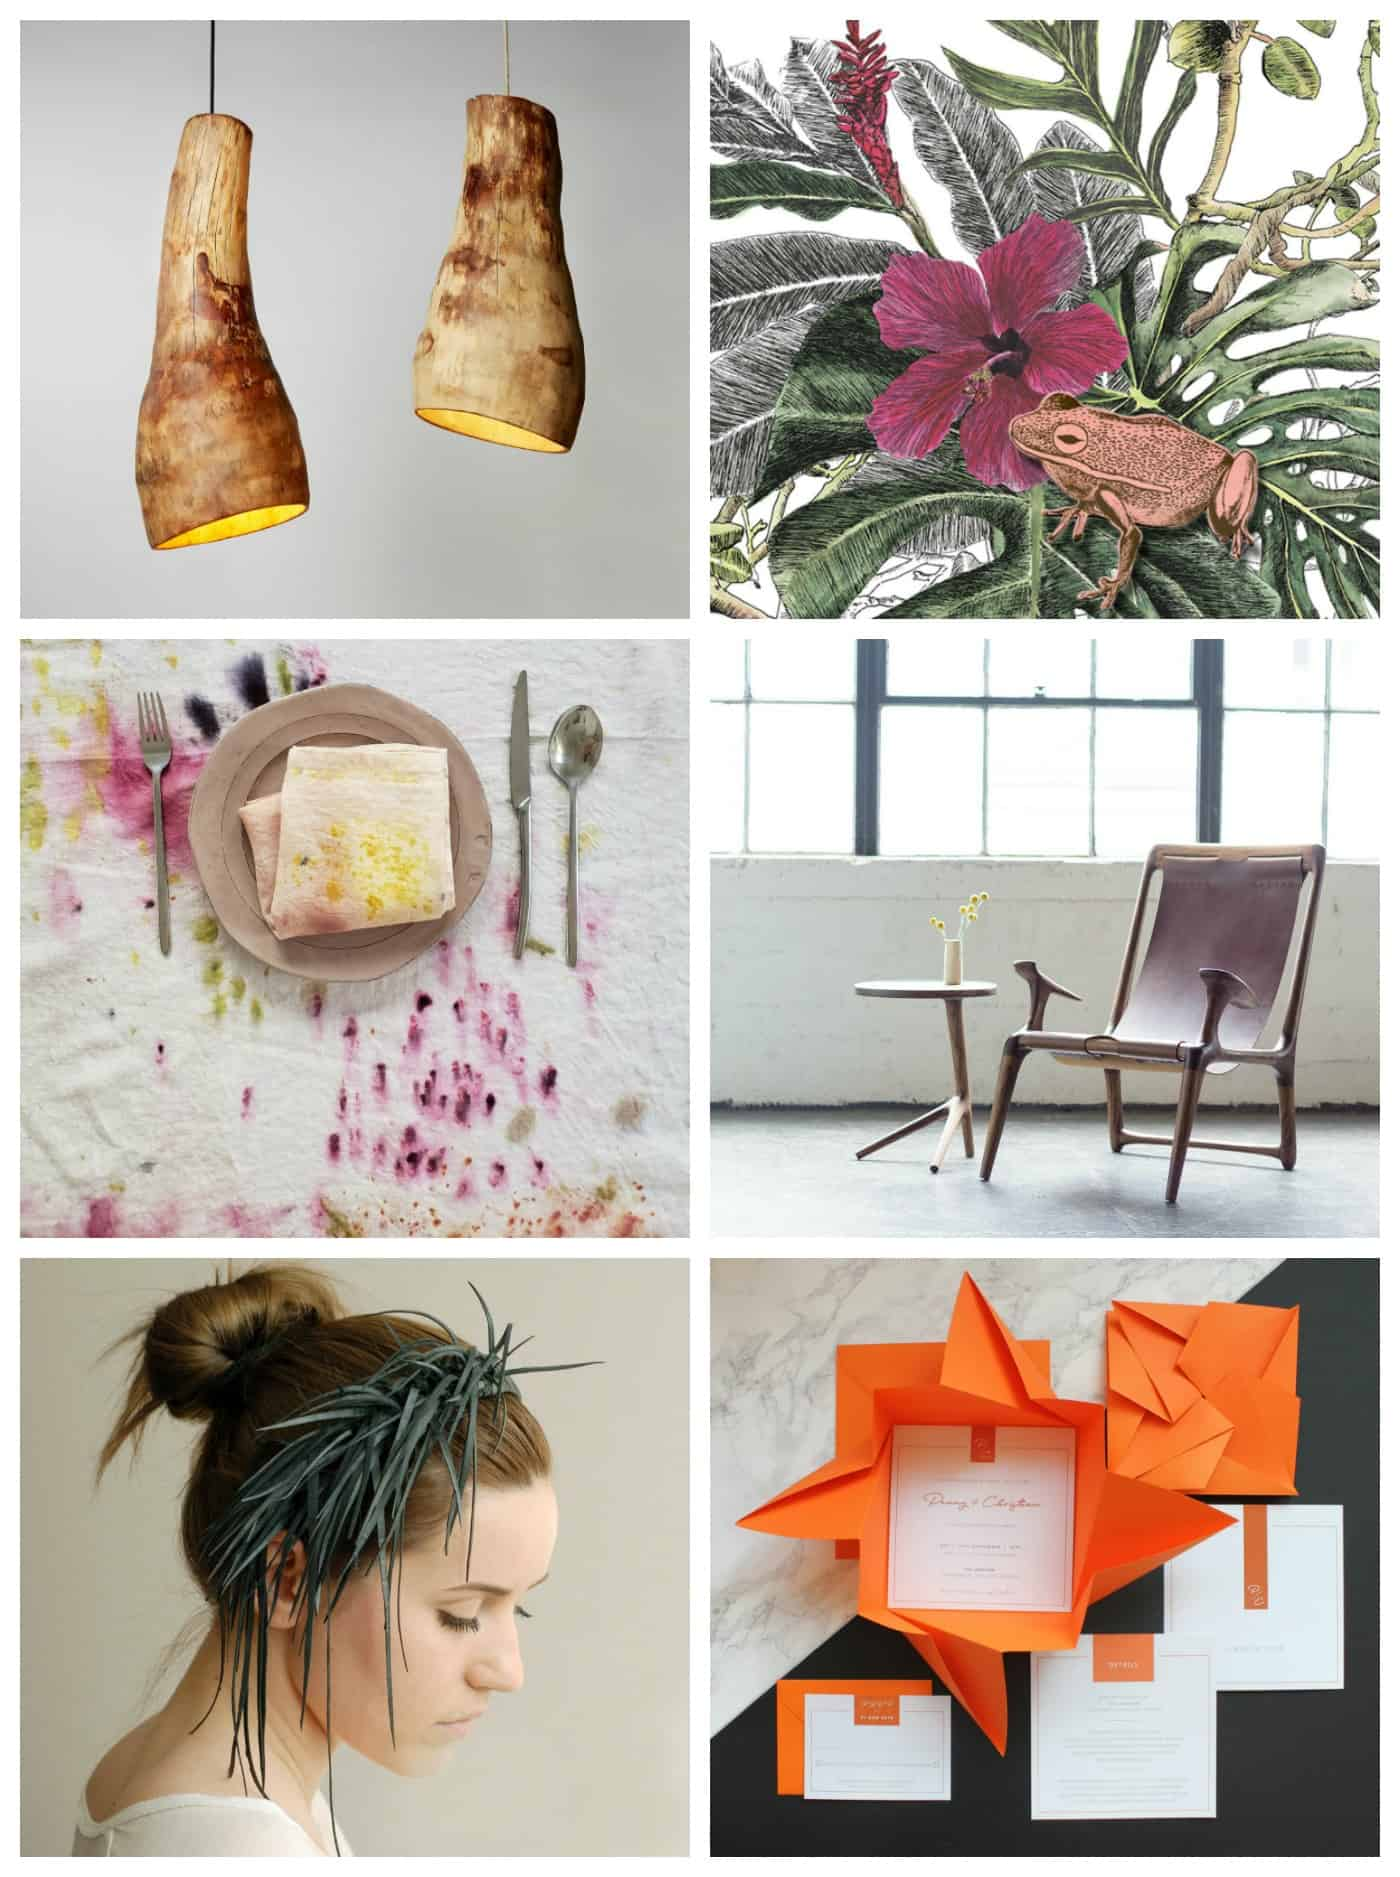 handmade items from The Etsy design competition